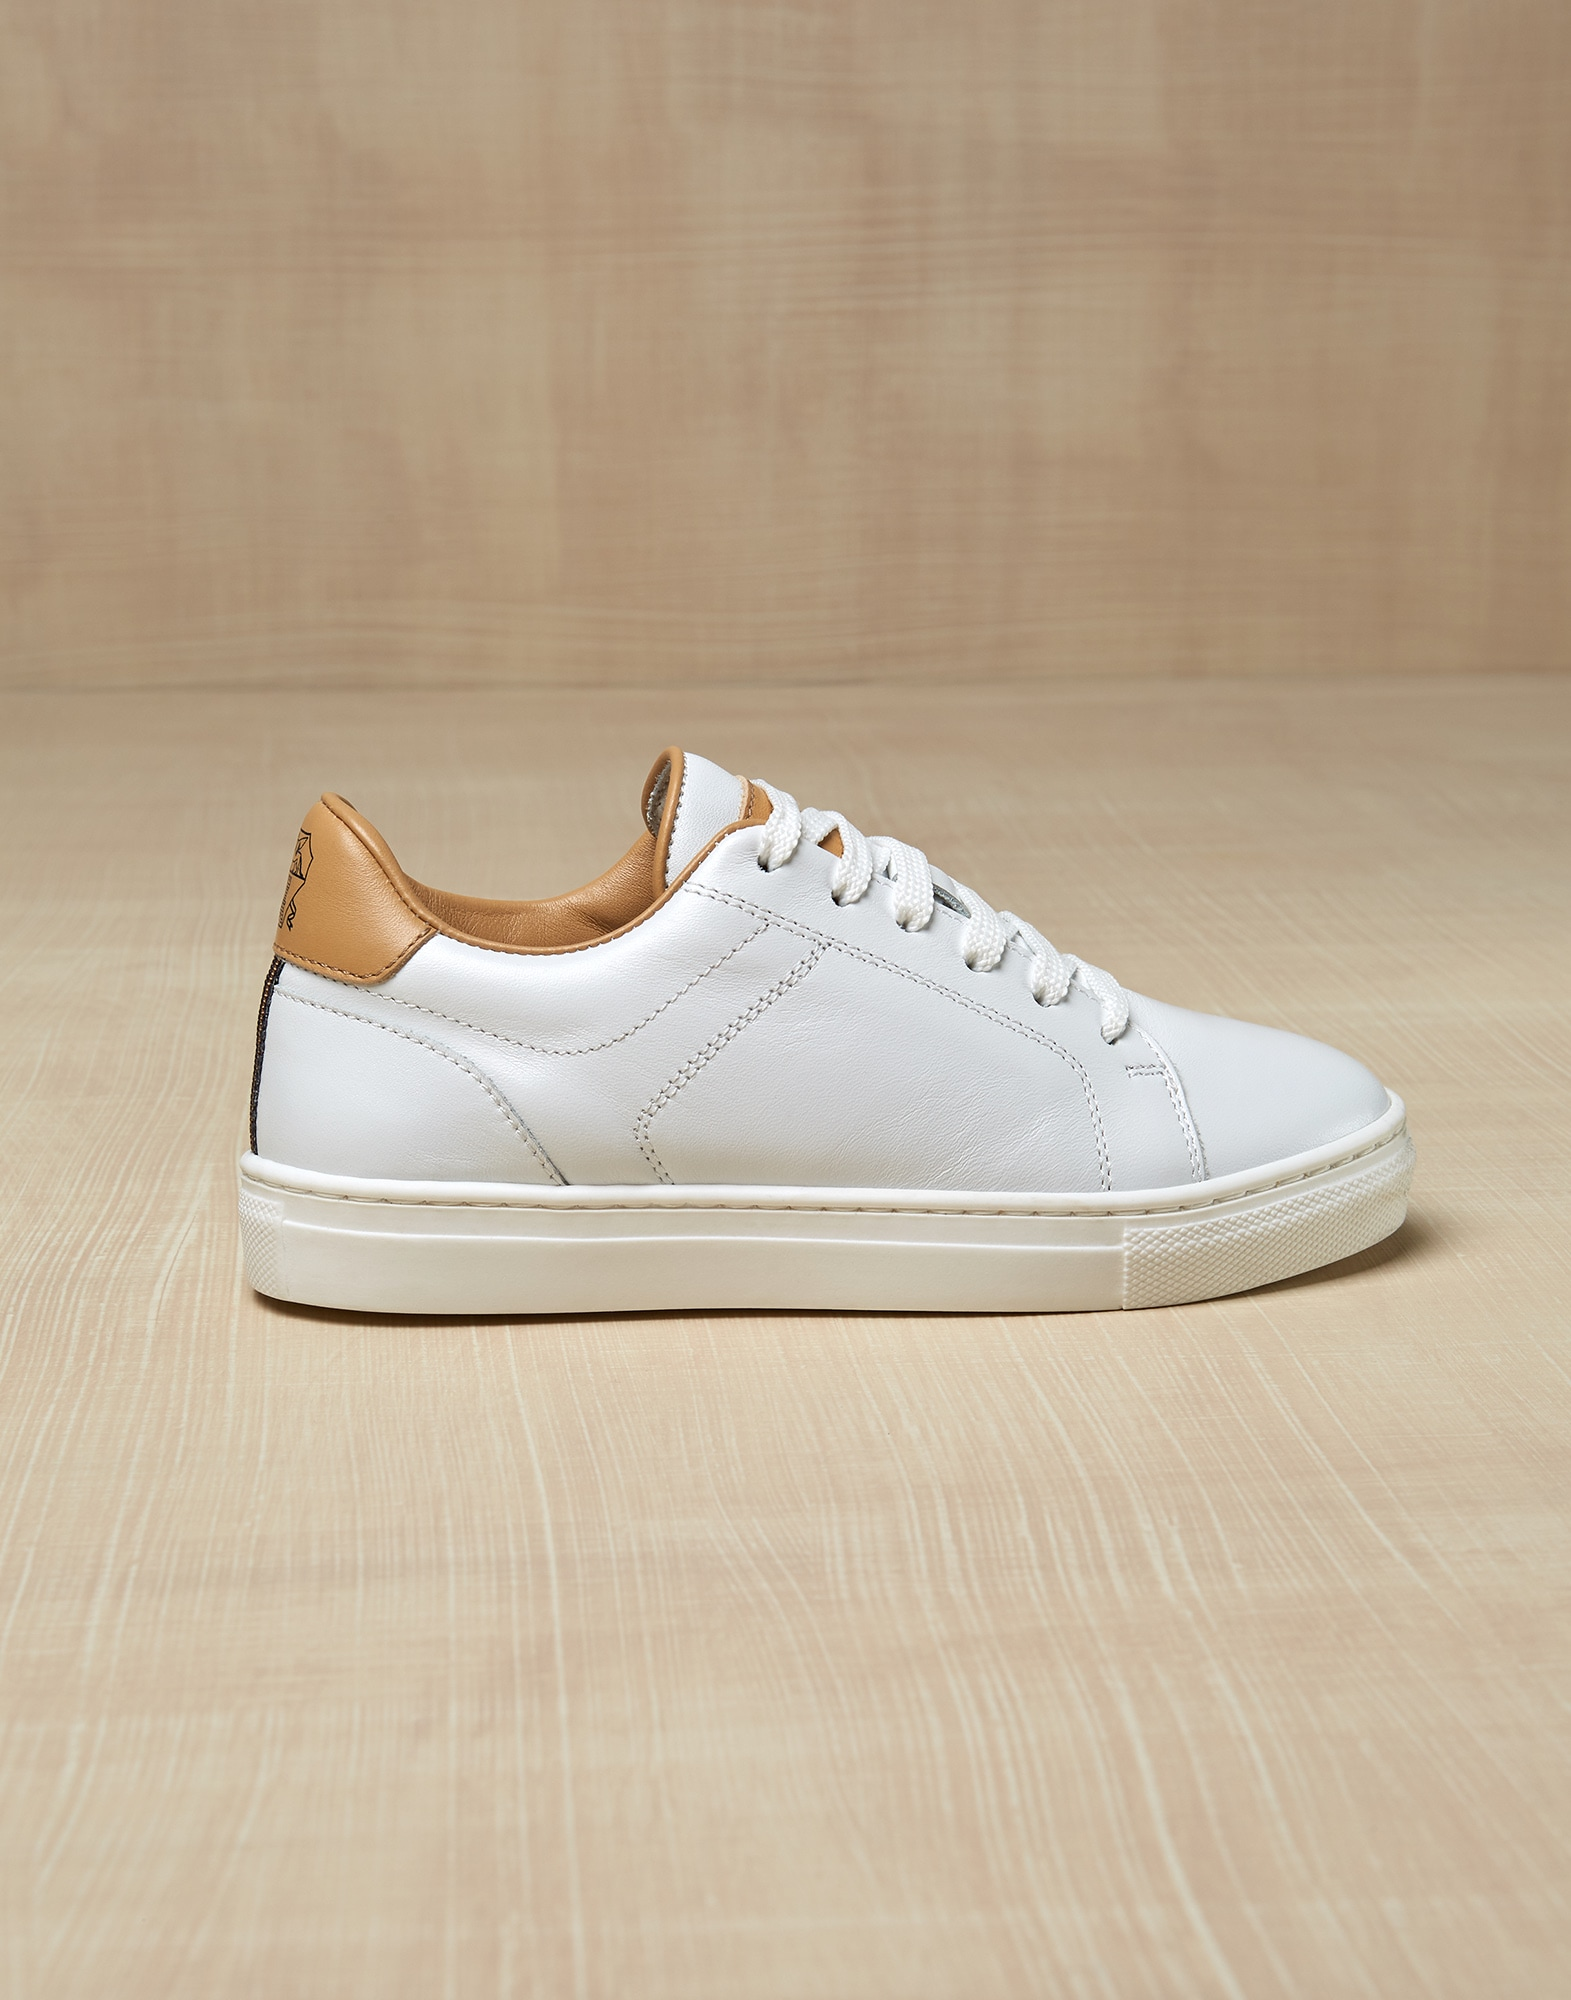 Sneakers White Boy 4 - Brunello Cucinelli